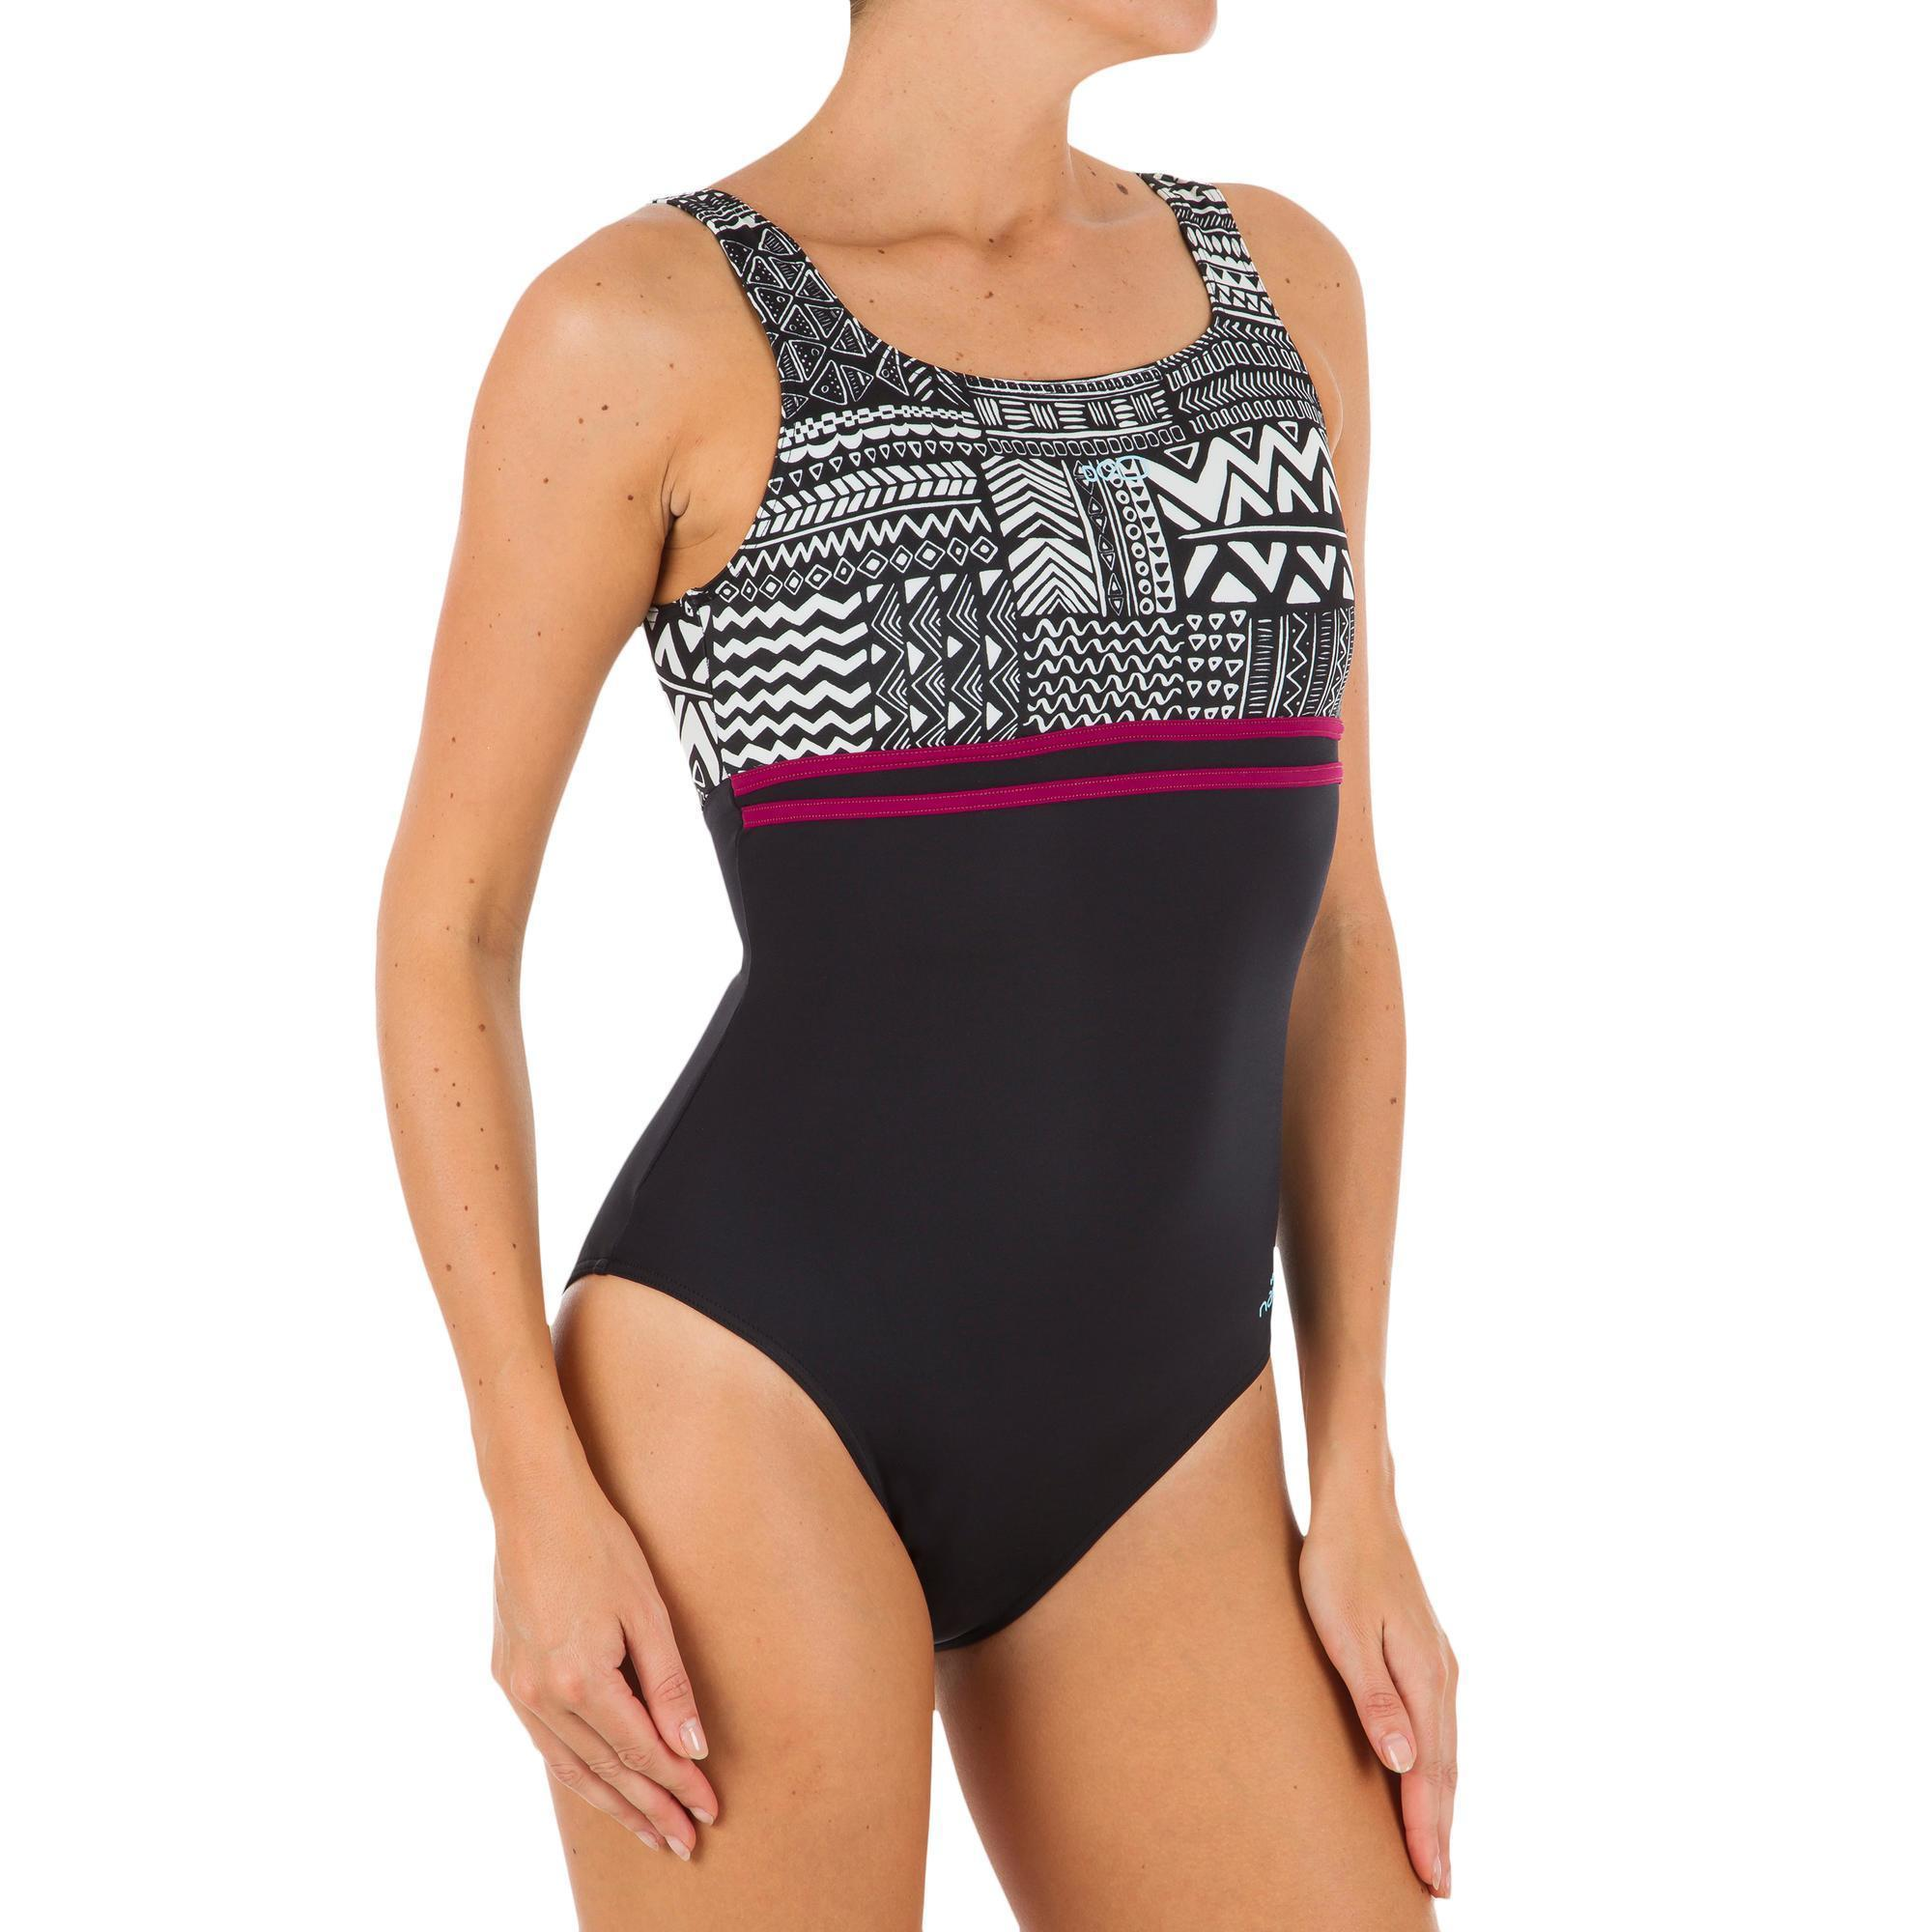 db2bf8d2fa8c4 Loran 1-Piece Swimsuit - Black